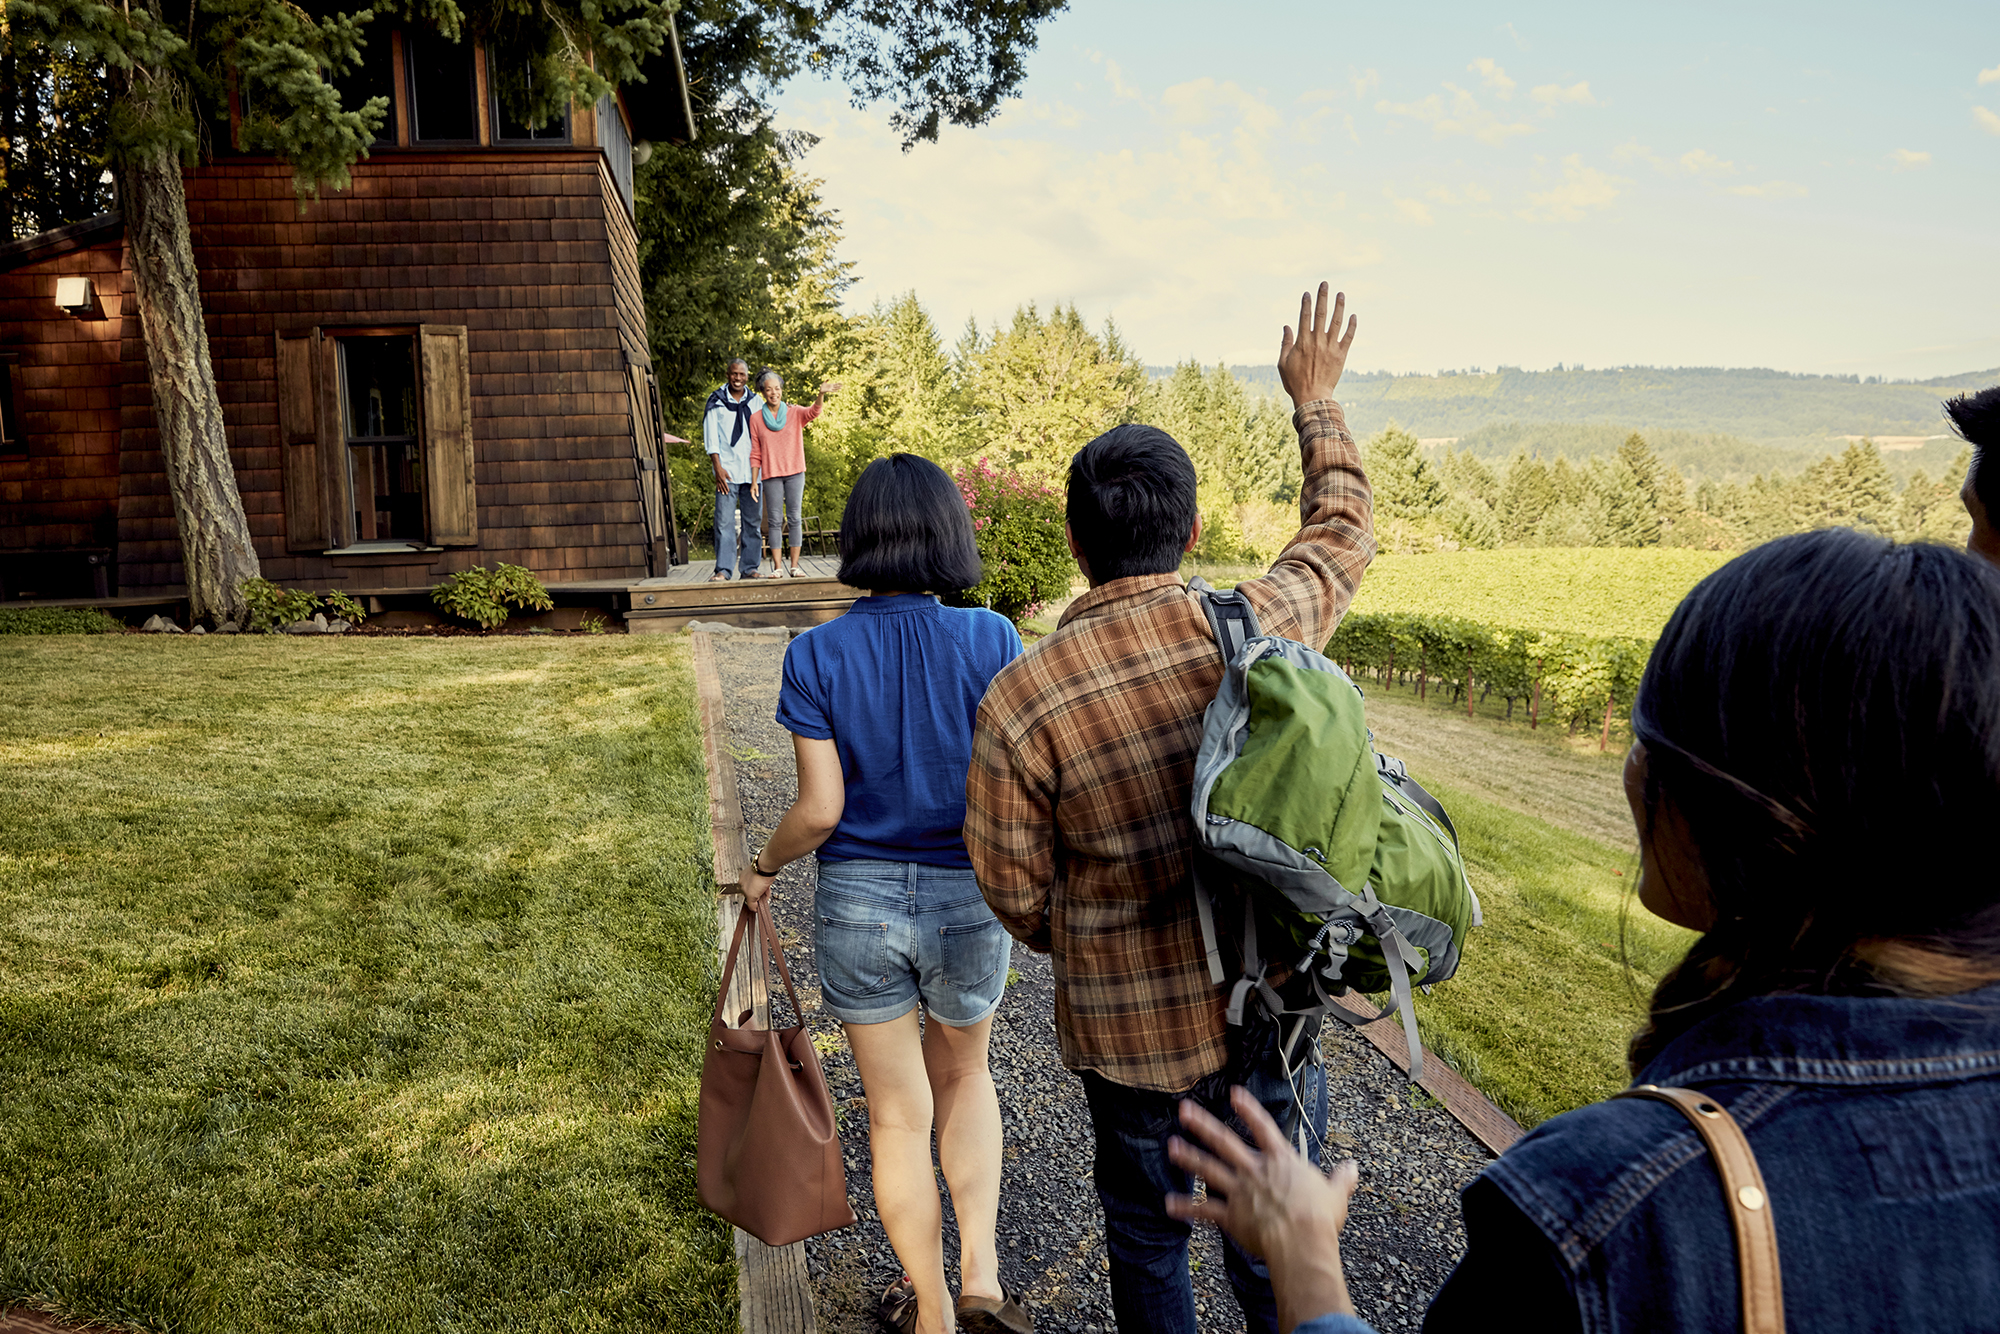 A group of friends are greeted by their hosts at their Airbnb listing.